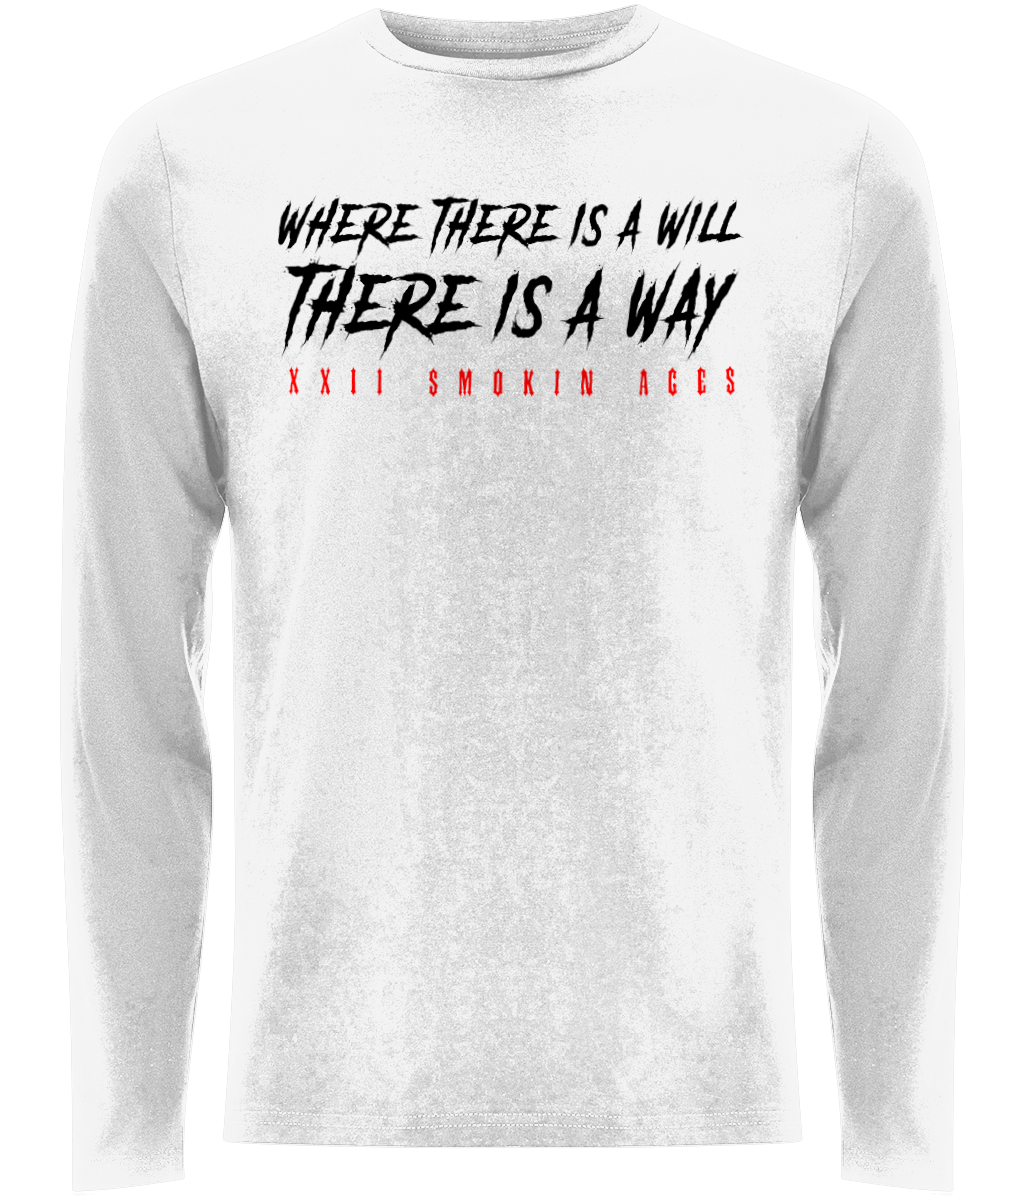 22 Smokin AceS - Where Will Way - Long Sleeved Tee